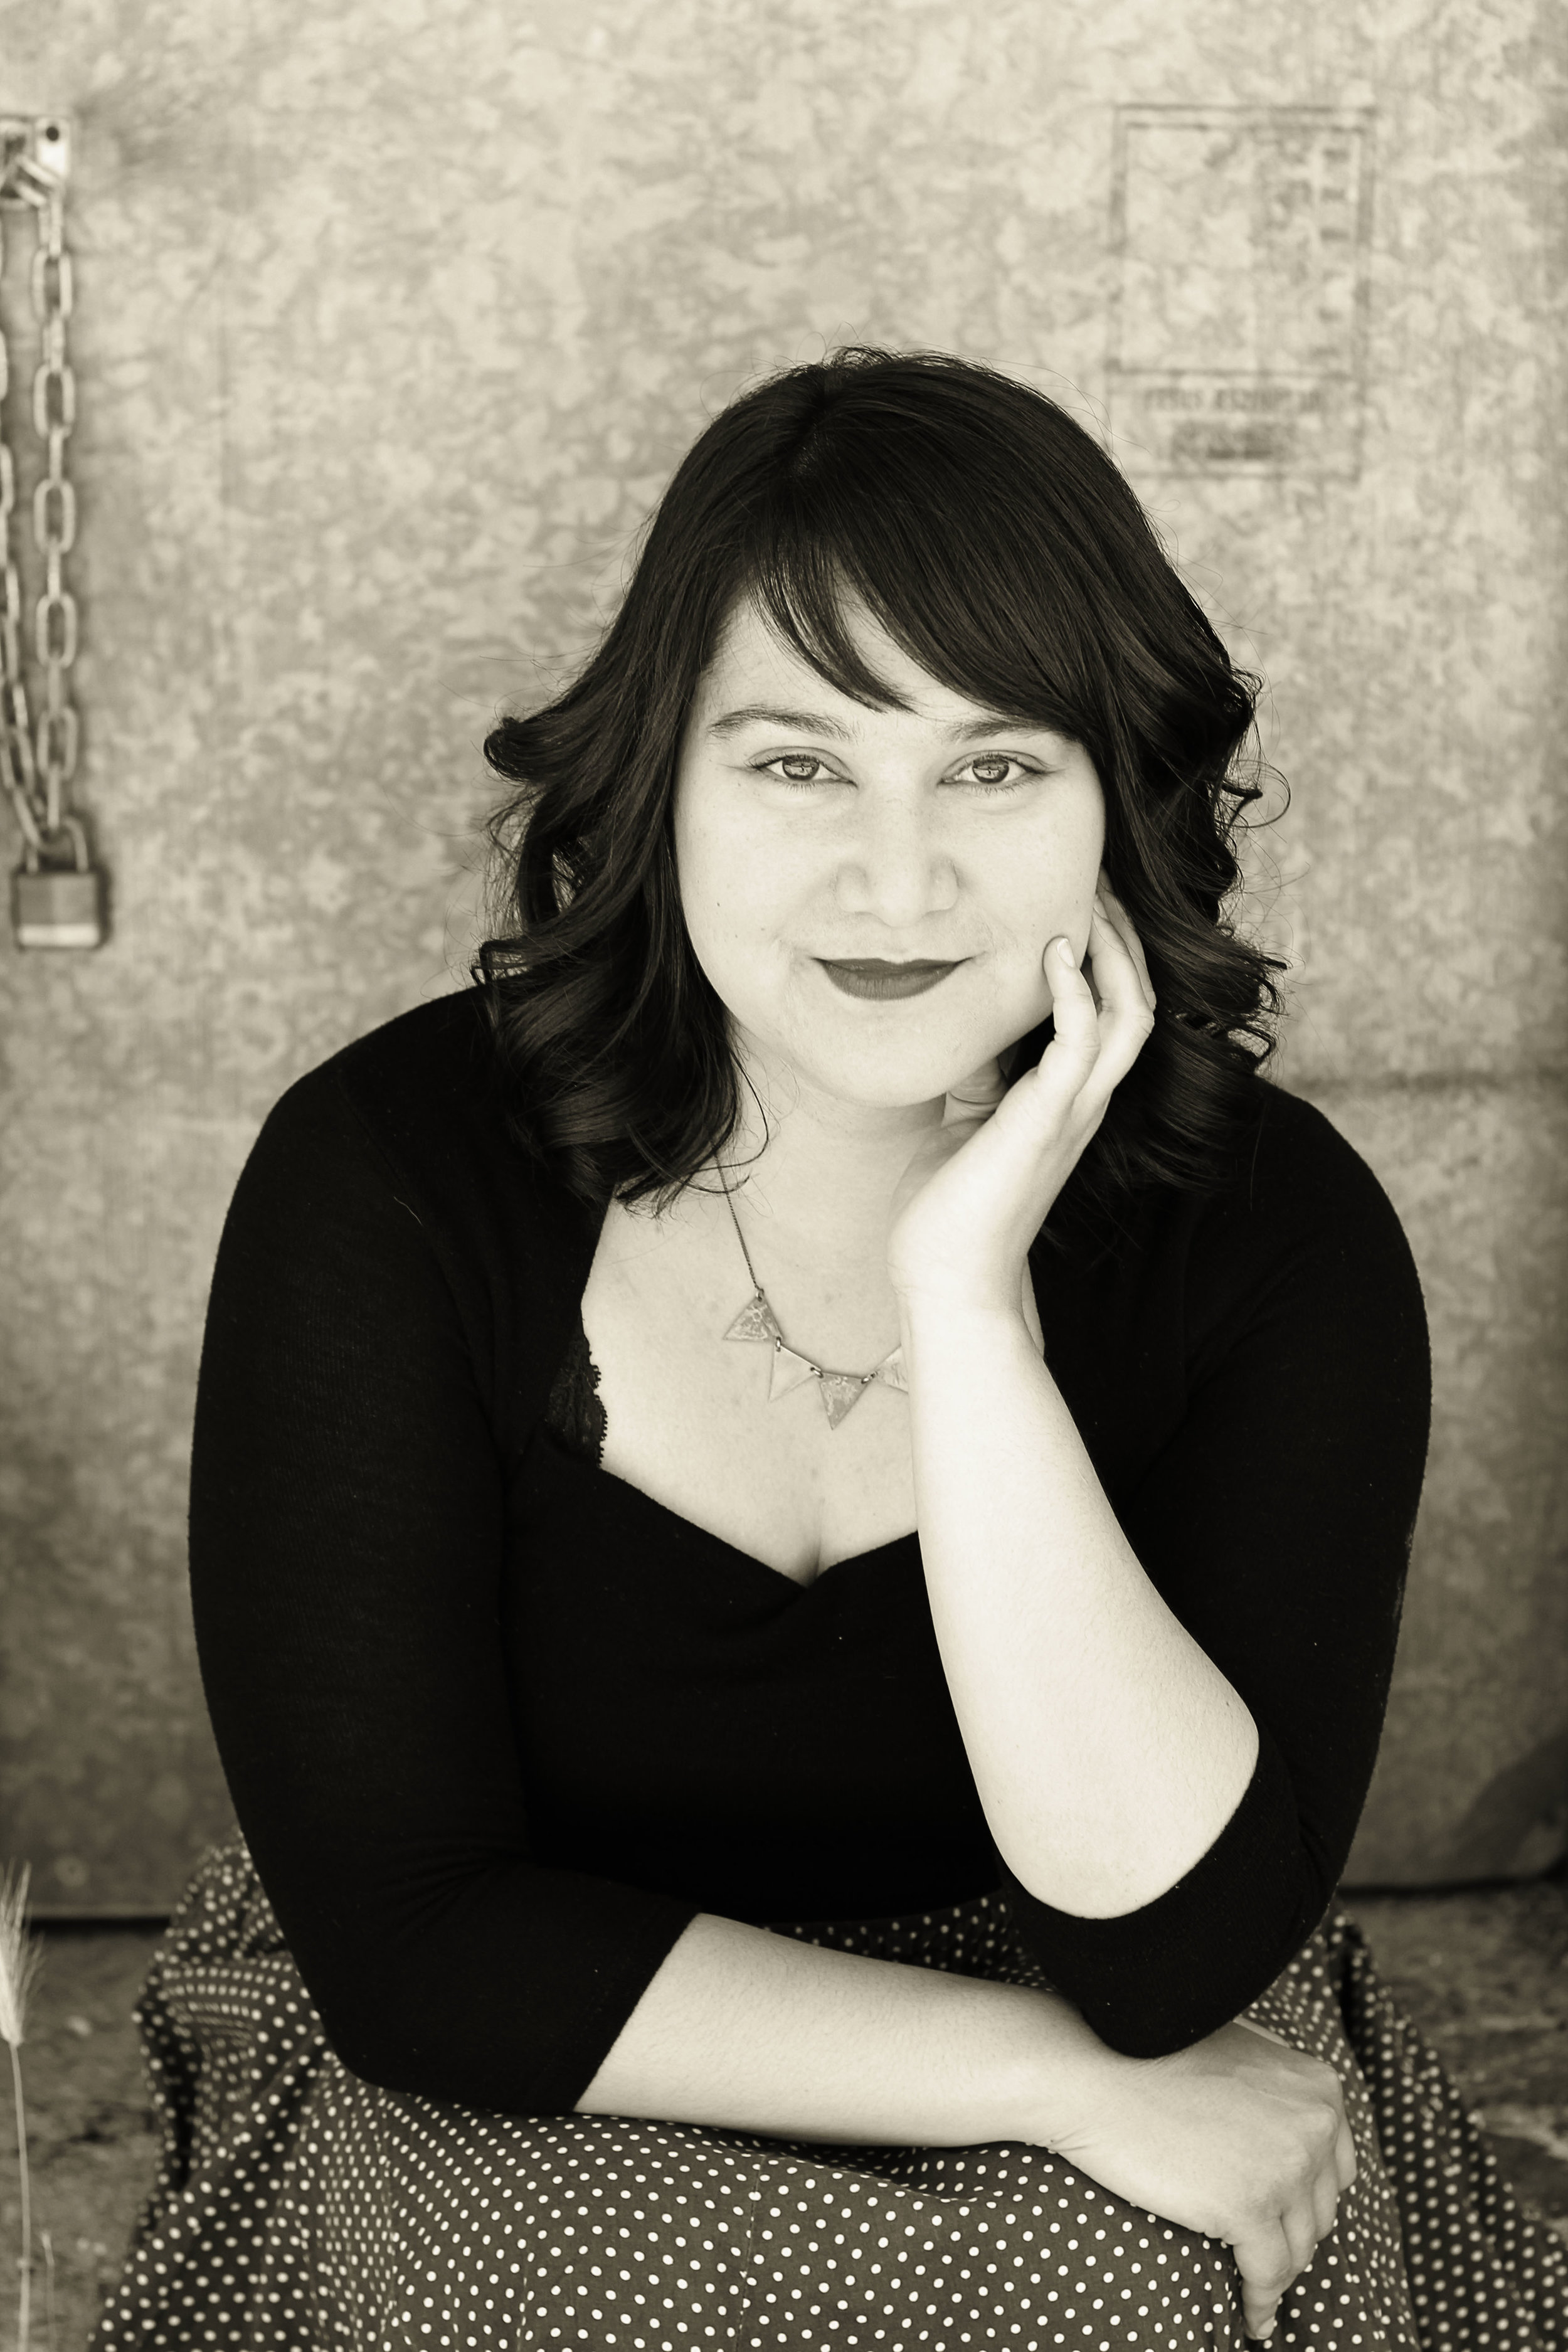 """Janine Joseph - Janine Joseph was born in the Philippines. She is the author of Driving without a License, winner of the Kundiman Poetry Prize and 2018 da Vinci Eye award, finalist for the 2017 Oklahoma Book Award, and named an Honorable Mention for the 2018 Sheila Margaret Motton Book Prize from the New England Poetry Club. Her poems, essays, and reviews have appeared in The Atlantic, World Literature Today, The Poem's Country: Place & Poetic Practice, The Kenyon Review, Best New Poets, Best American Experimental Writing, Zócalo Public Square, VIDA: Women in Literary Arts, the Academy of American Poets' Poem-a-Day series, and elsewhere. A librettist, her commissioned work for the Houston Grand Opera/HGOco include What Wings They Were: The Case of Emeline, """"On This Muddy Water"""": Voices from the Houston Ship Channel, and From My Mother's Mother. Additionally, her poems have been set to music by acclaimed composers Melissa Dunphy, for the PhilHarmonia and Resonance Ensemble's """"American DREAMers: Stories of Immigration"""" concerts, and Reinaldo Moya, for the Schubert Club's """"DREAM Song"""" concert. Janine is an organizer for Undocupoets and serves on the Advisory Board for the Center for Poets & Writers in Tulsa. She lives in Stillwater, where she is an Assistant Professor of Creative Writing at Oklahoma State University. Learn more at www.janinejoseph.com"""